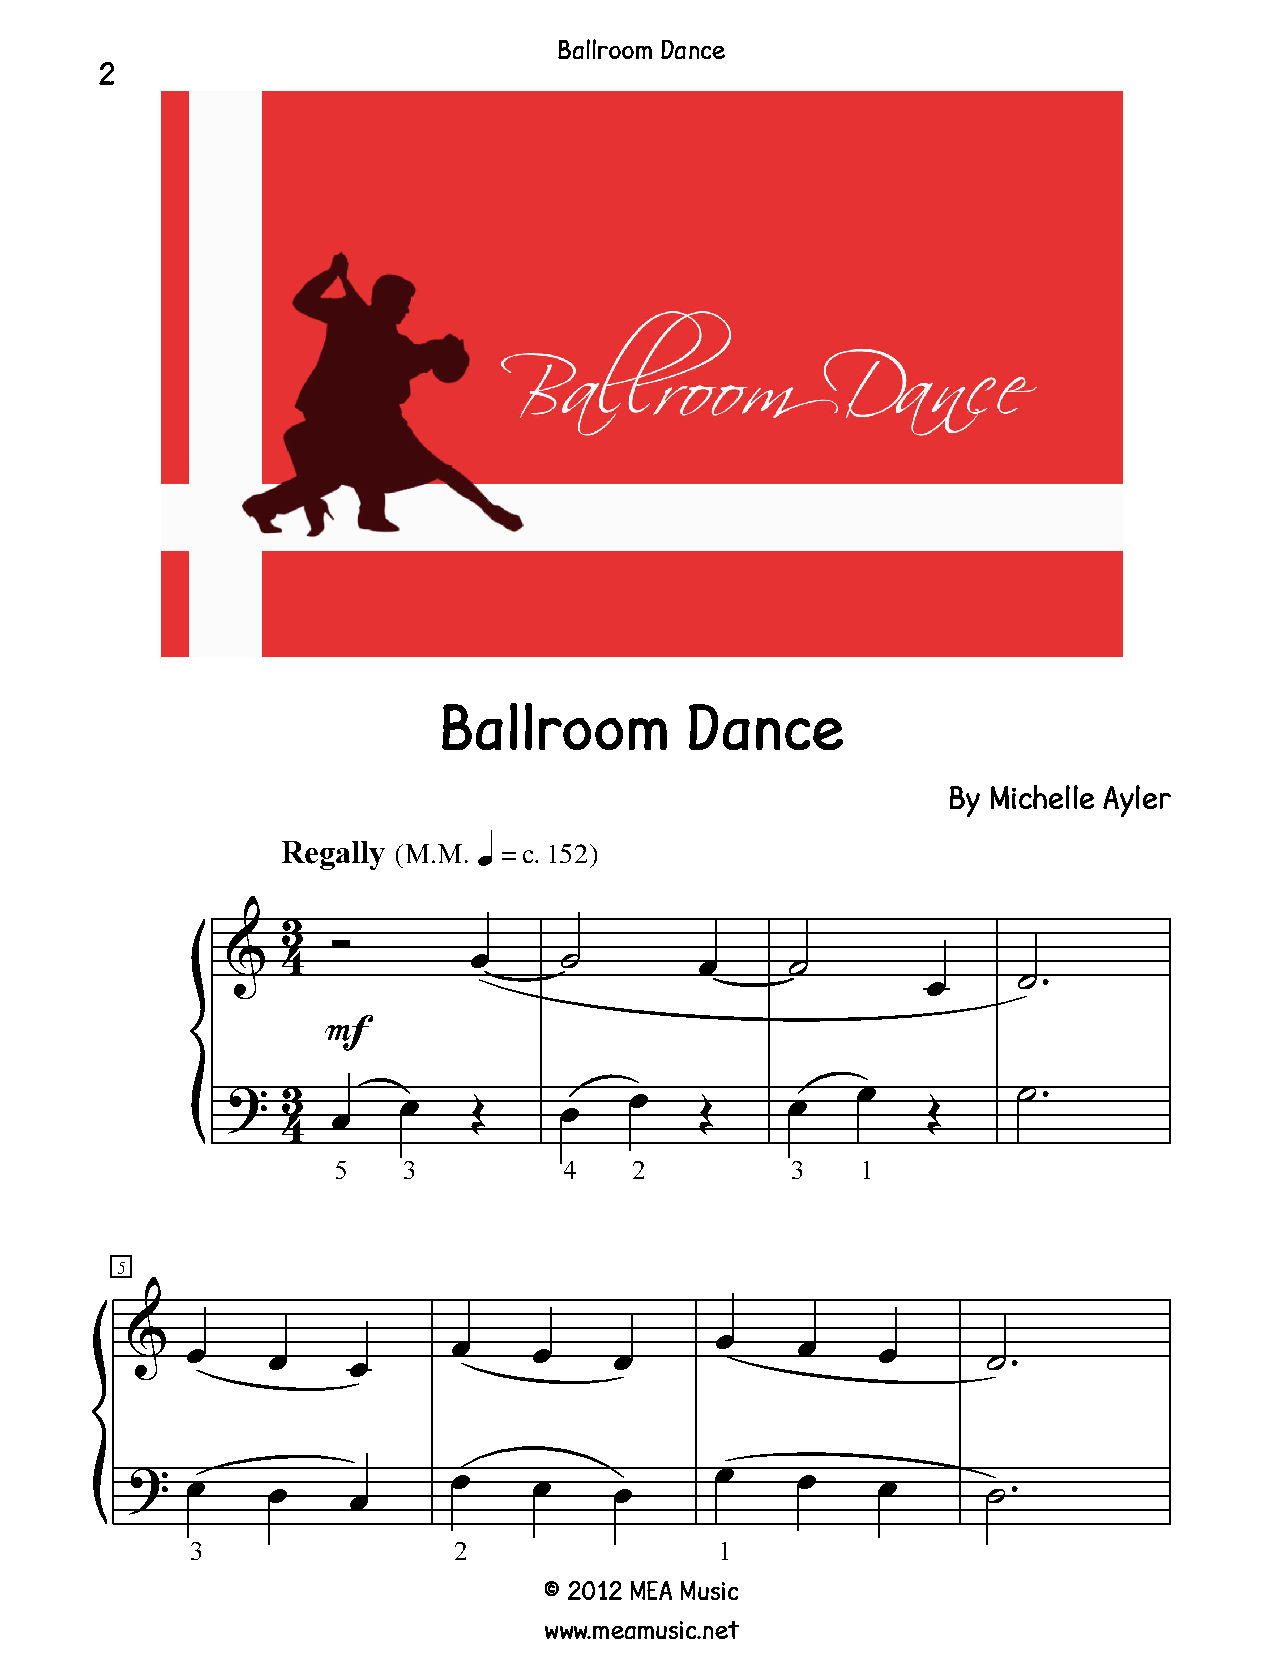 Ballroom Dance Piano Sheet Music Solo.  First page sample of a composition written for piano solo. This piece is for beginning piano students. Great for students that are open to playing pretty much anything. Use this sheet music for piano recitals, lessons, and more.  A level 2B piano music sheet in the key of C. Get a printable download for only $2.99. Or order traditional sheet music for delivery. Only $4.99.